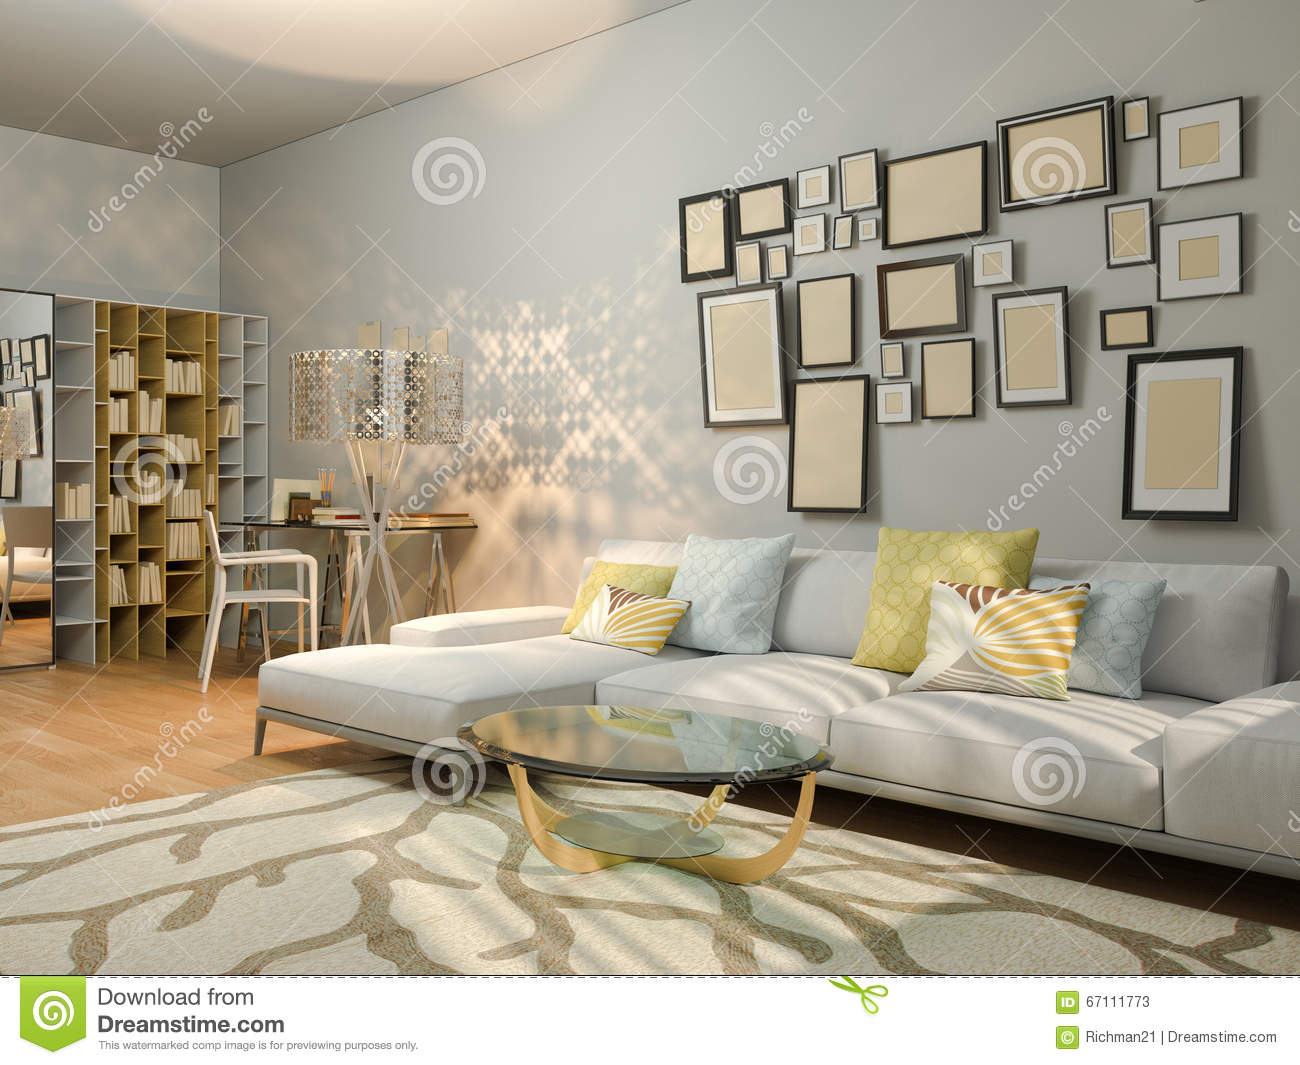 desk in living room apartment decor with light gray walls 3d visualization of interior design a studio render modern minimalist style the illustration shows corner sofa and laptop